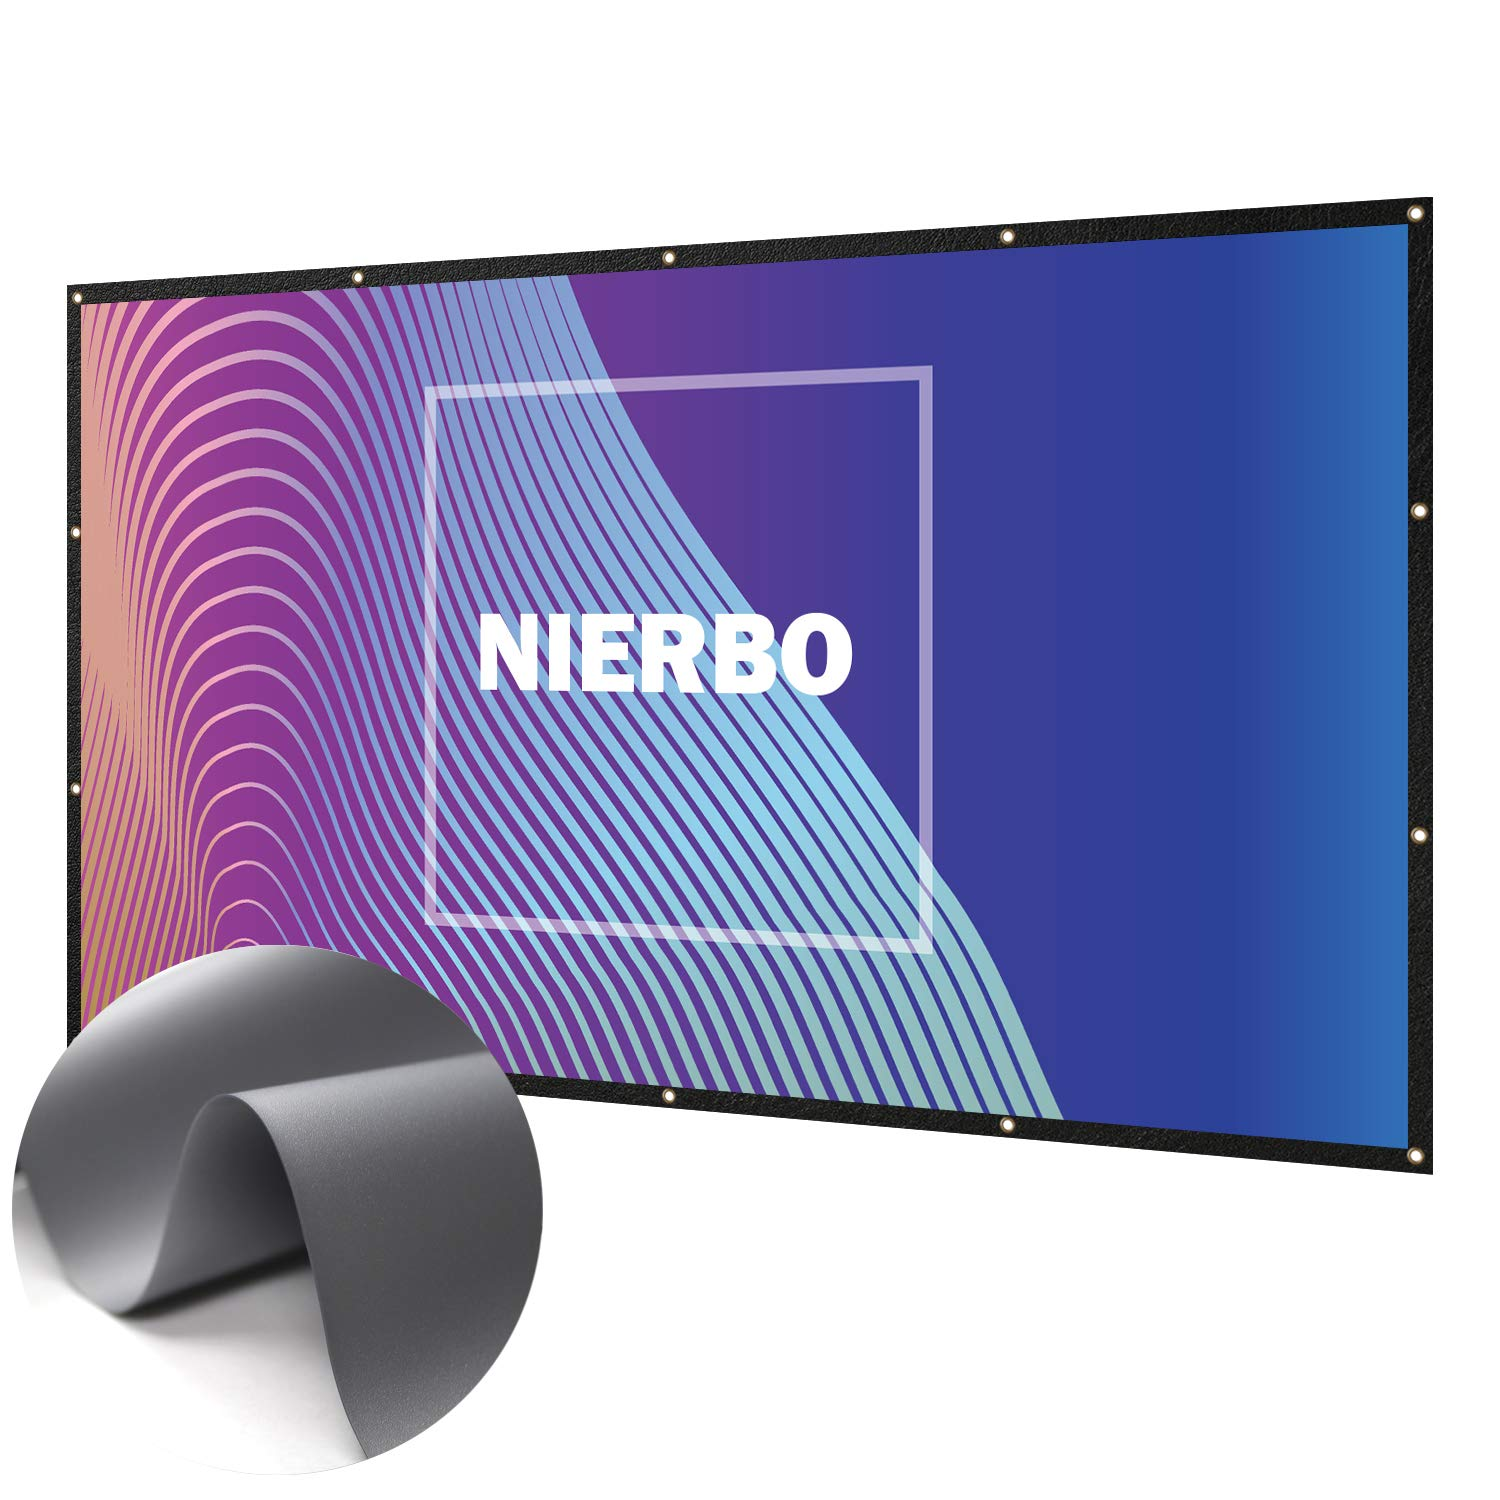 100 inch Portable Soft film 3D projection silver screen 16:9 with black borders & slot holes NIERBO UK-Silver Screen 100